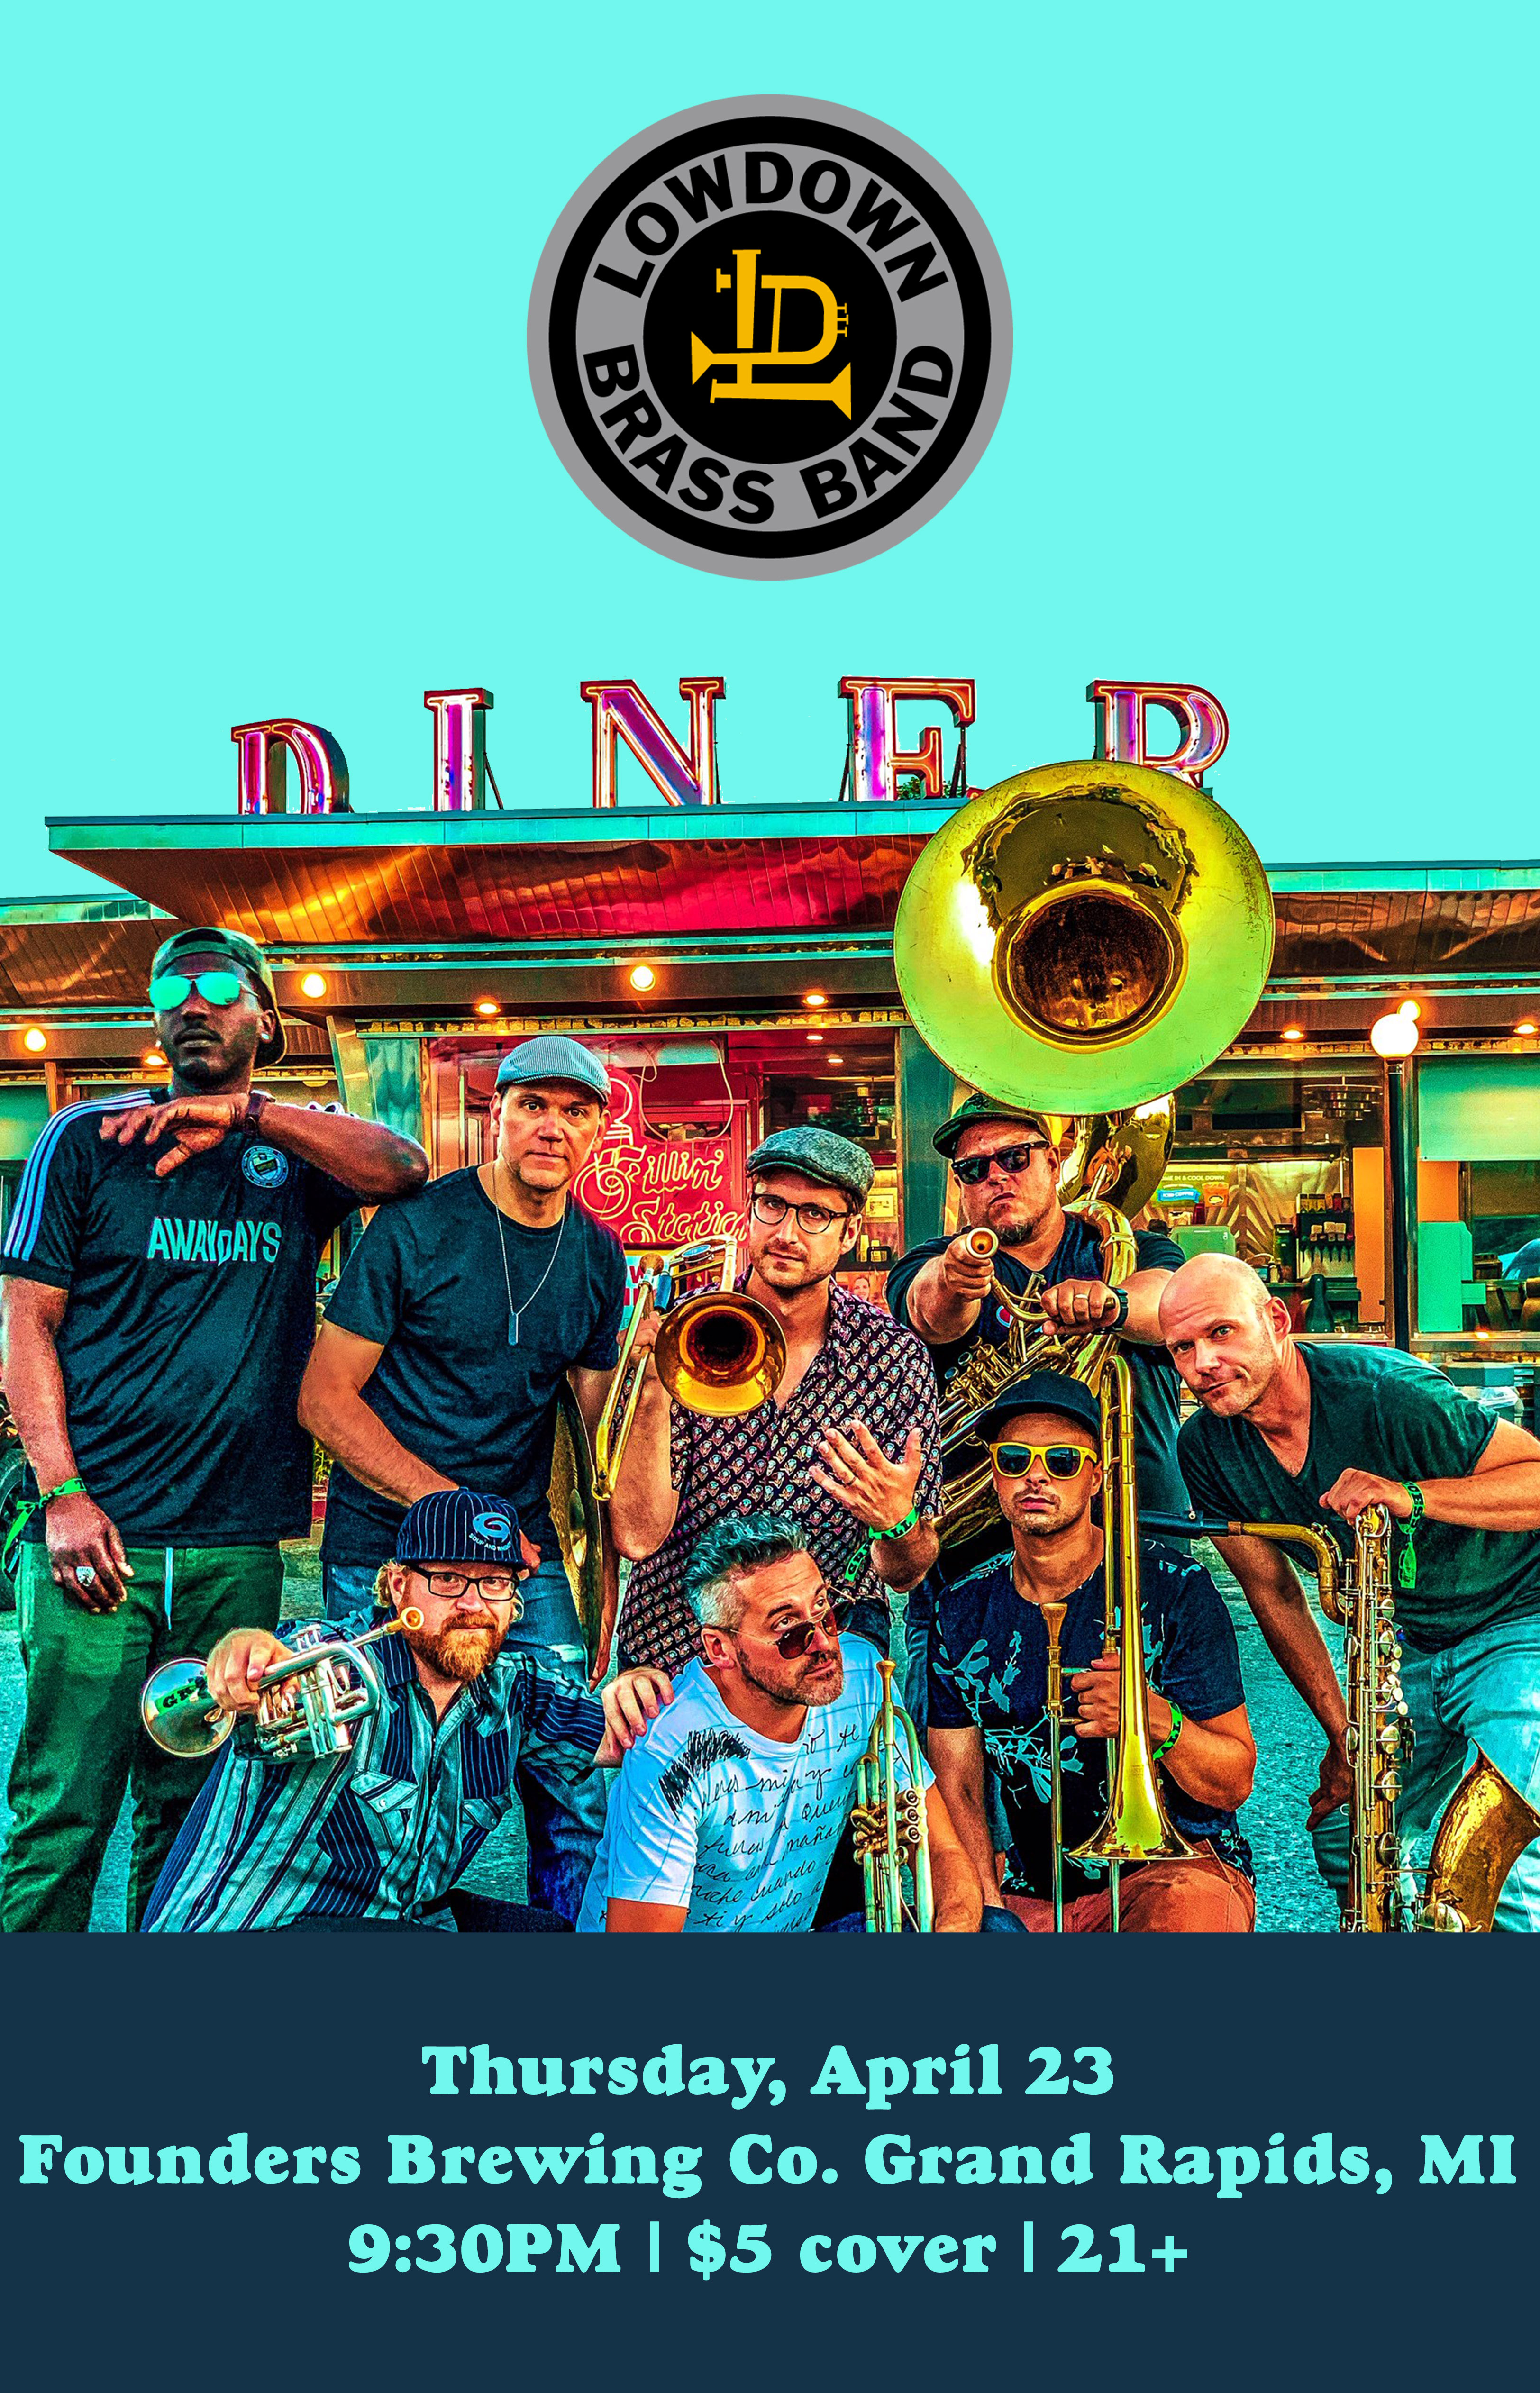 Lowdown Brass Ban event poster hosted by Founders Brewing Co.